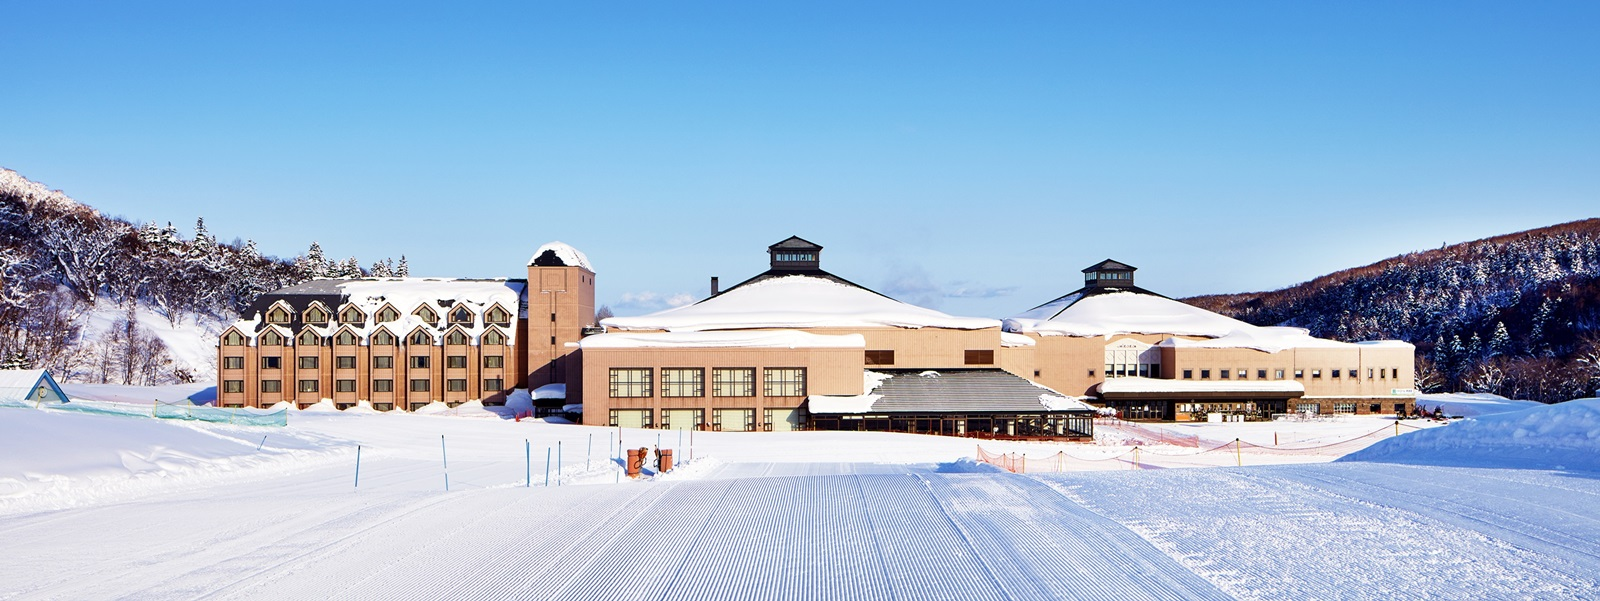 Kiroro, a famous ski resort From the movie Faraday